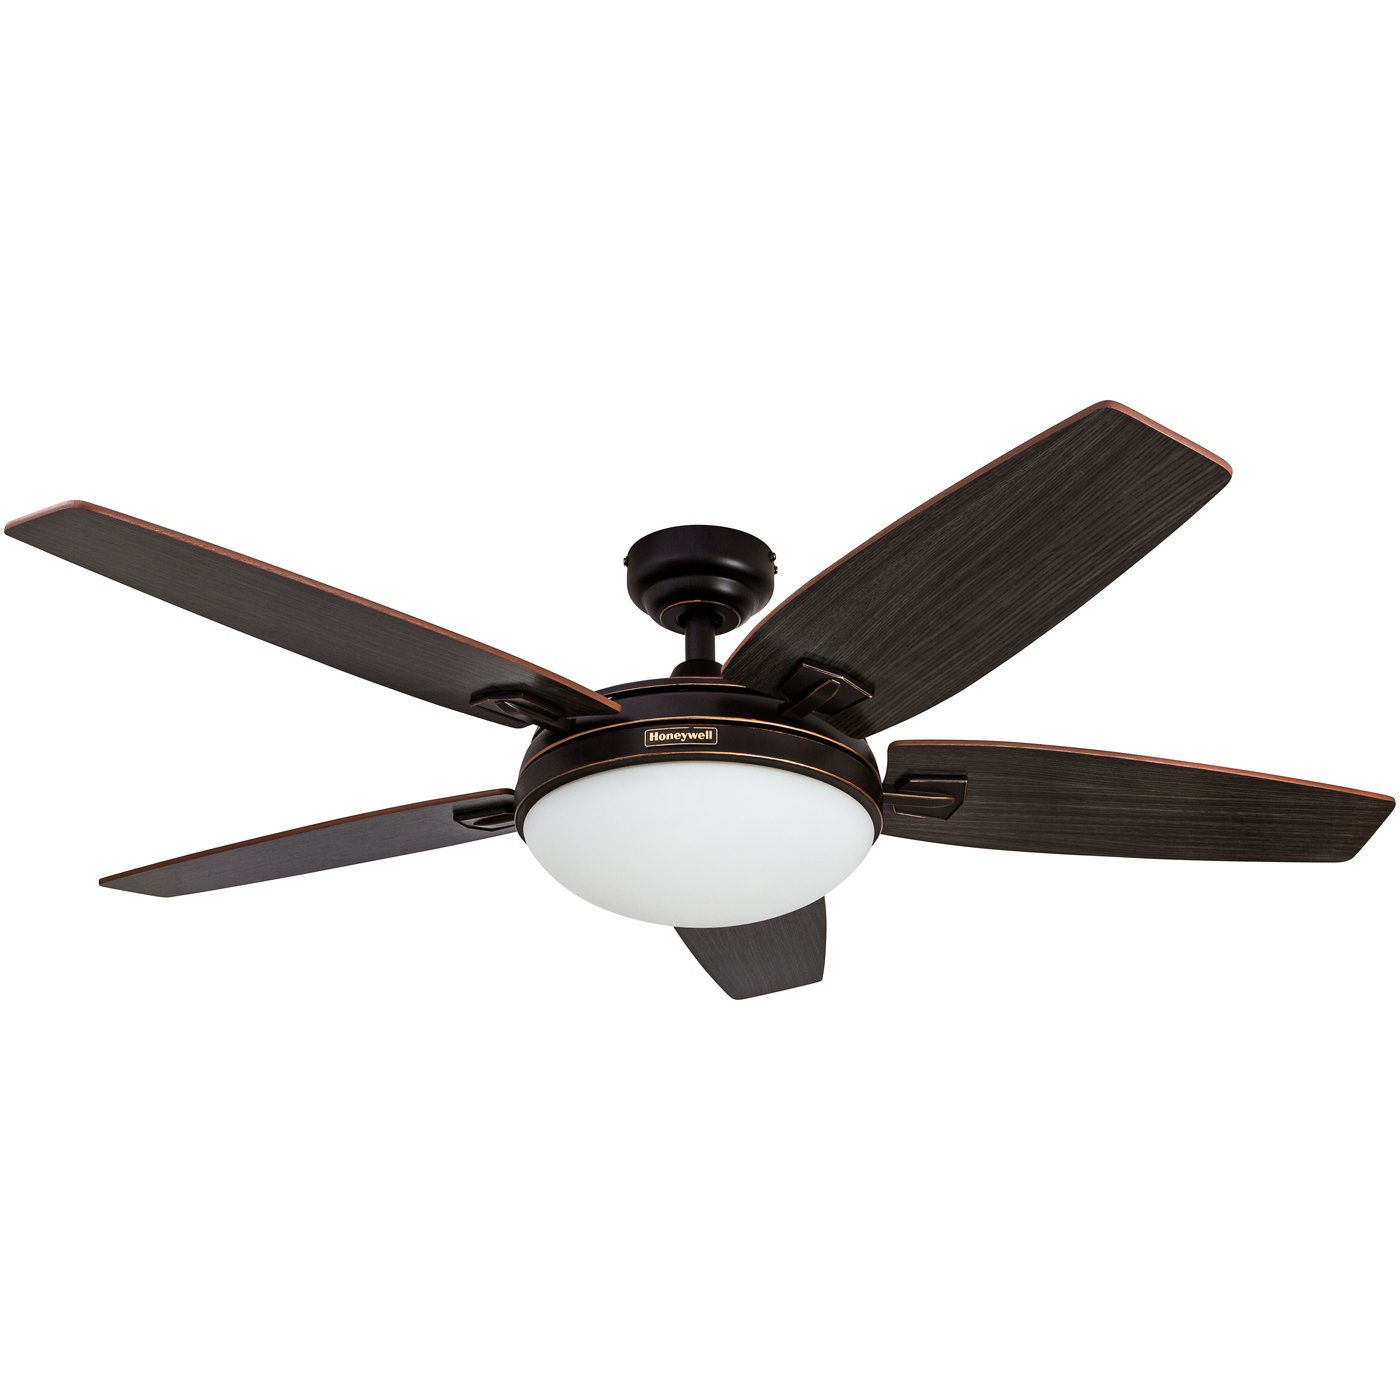 collections f ceilings rc fan rejuvenation l fans catalog with no sized light baseb ceiling peregrine industrial blade